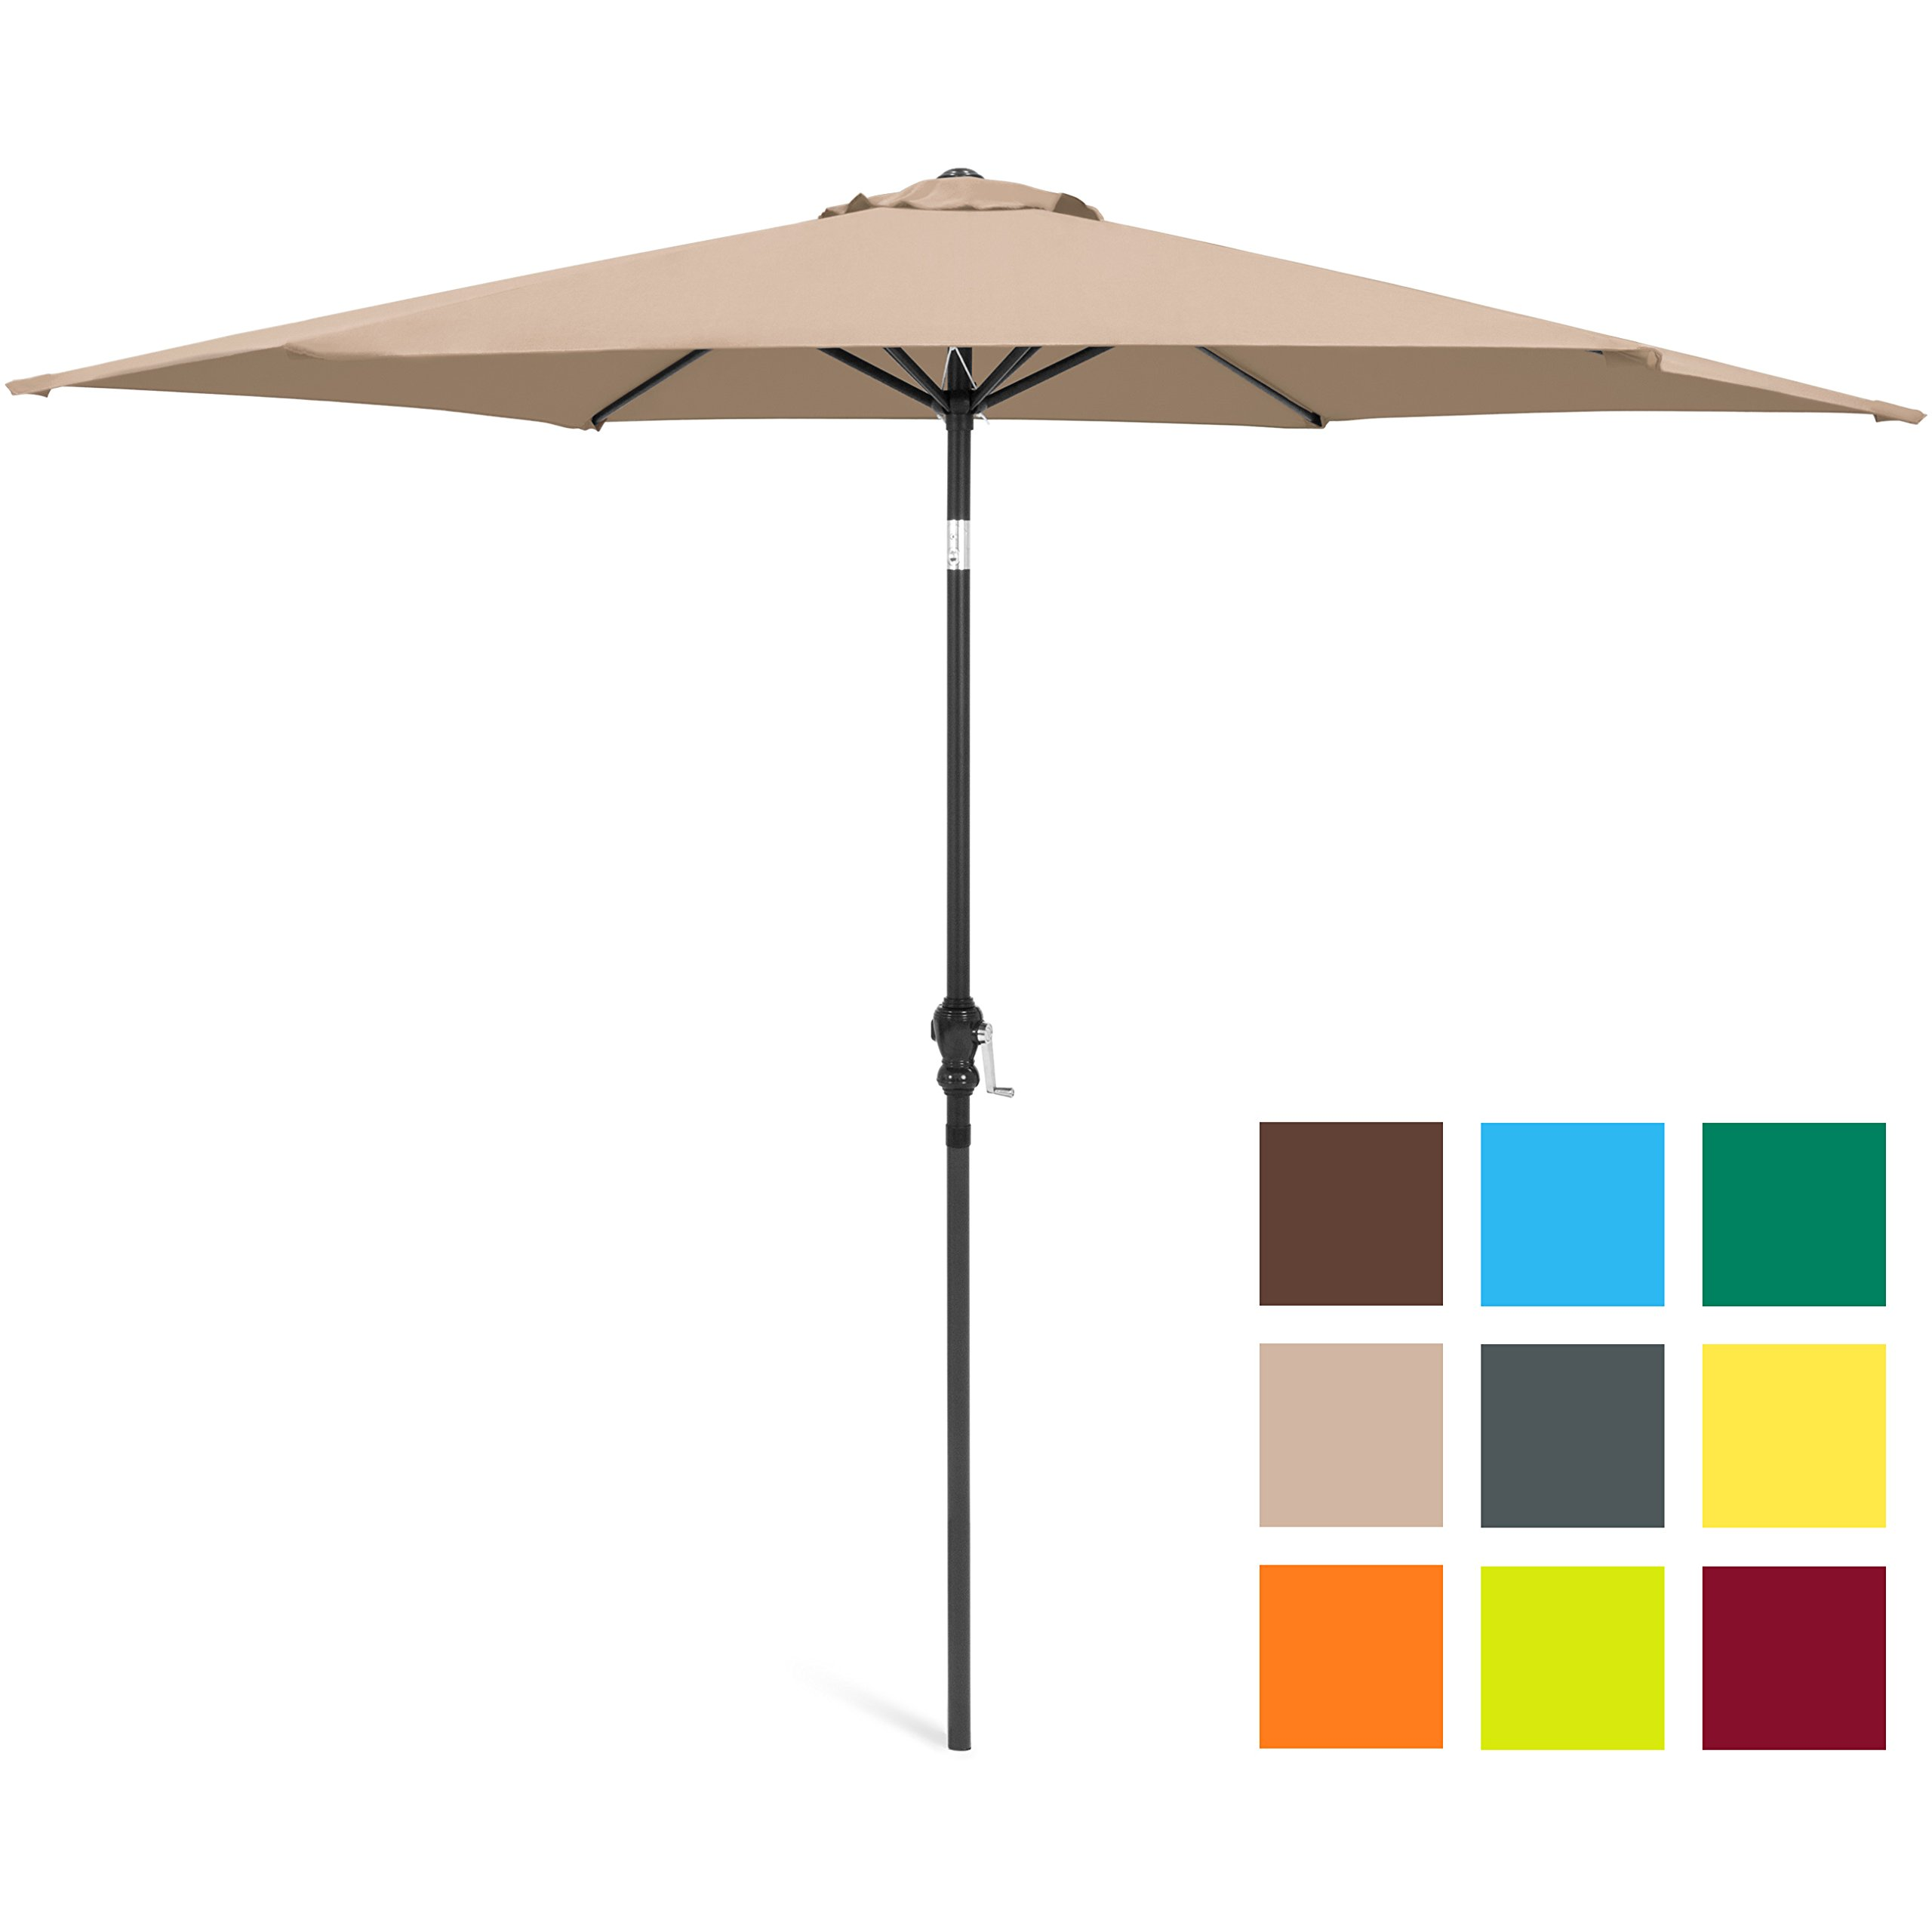 Best Choice Products 10ft Outdoor Steel Market Backyard Garden Patio Umbrella w/ Crank, Easy Push Button Tilt, 6 Ribs, Table Compatible - Tan by Best Choice Products